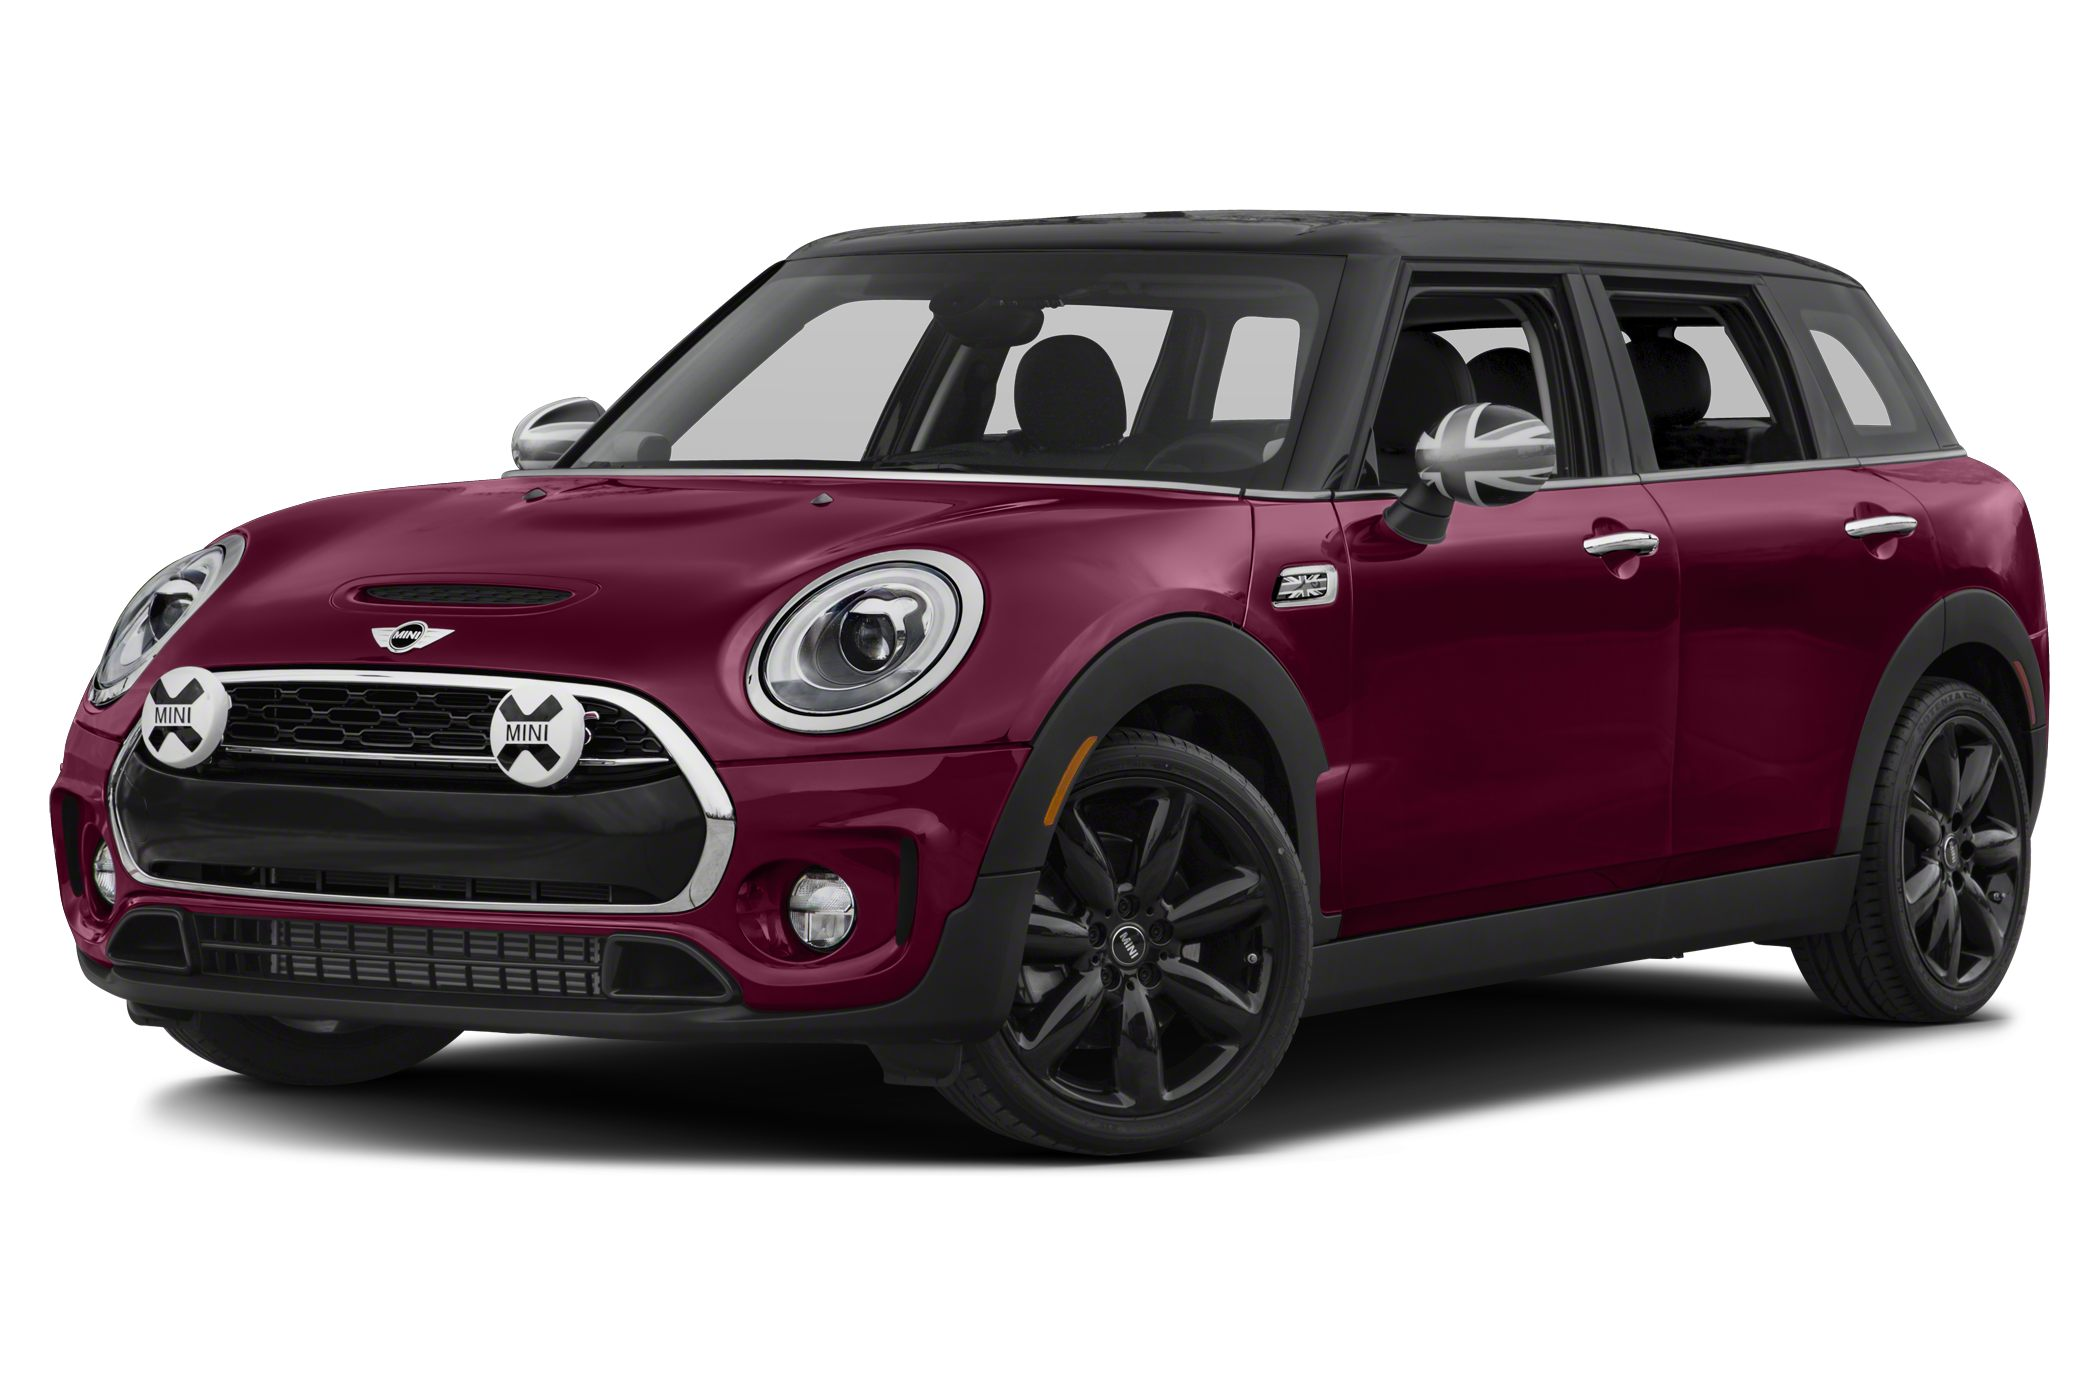 2017 MINI Cooper S Clubman Prices are PLUS tax tag title fee 799 Pre-Delivery Service Fee an